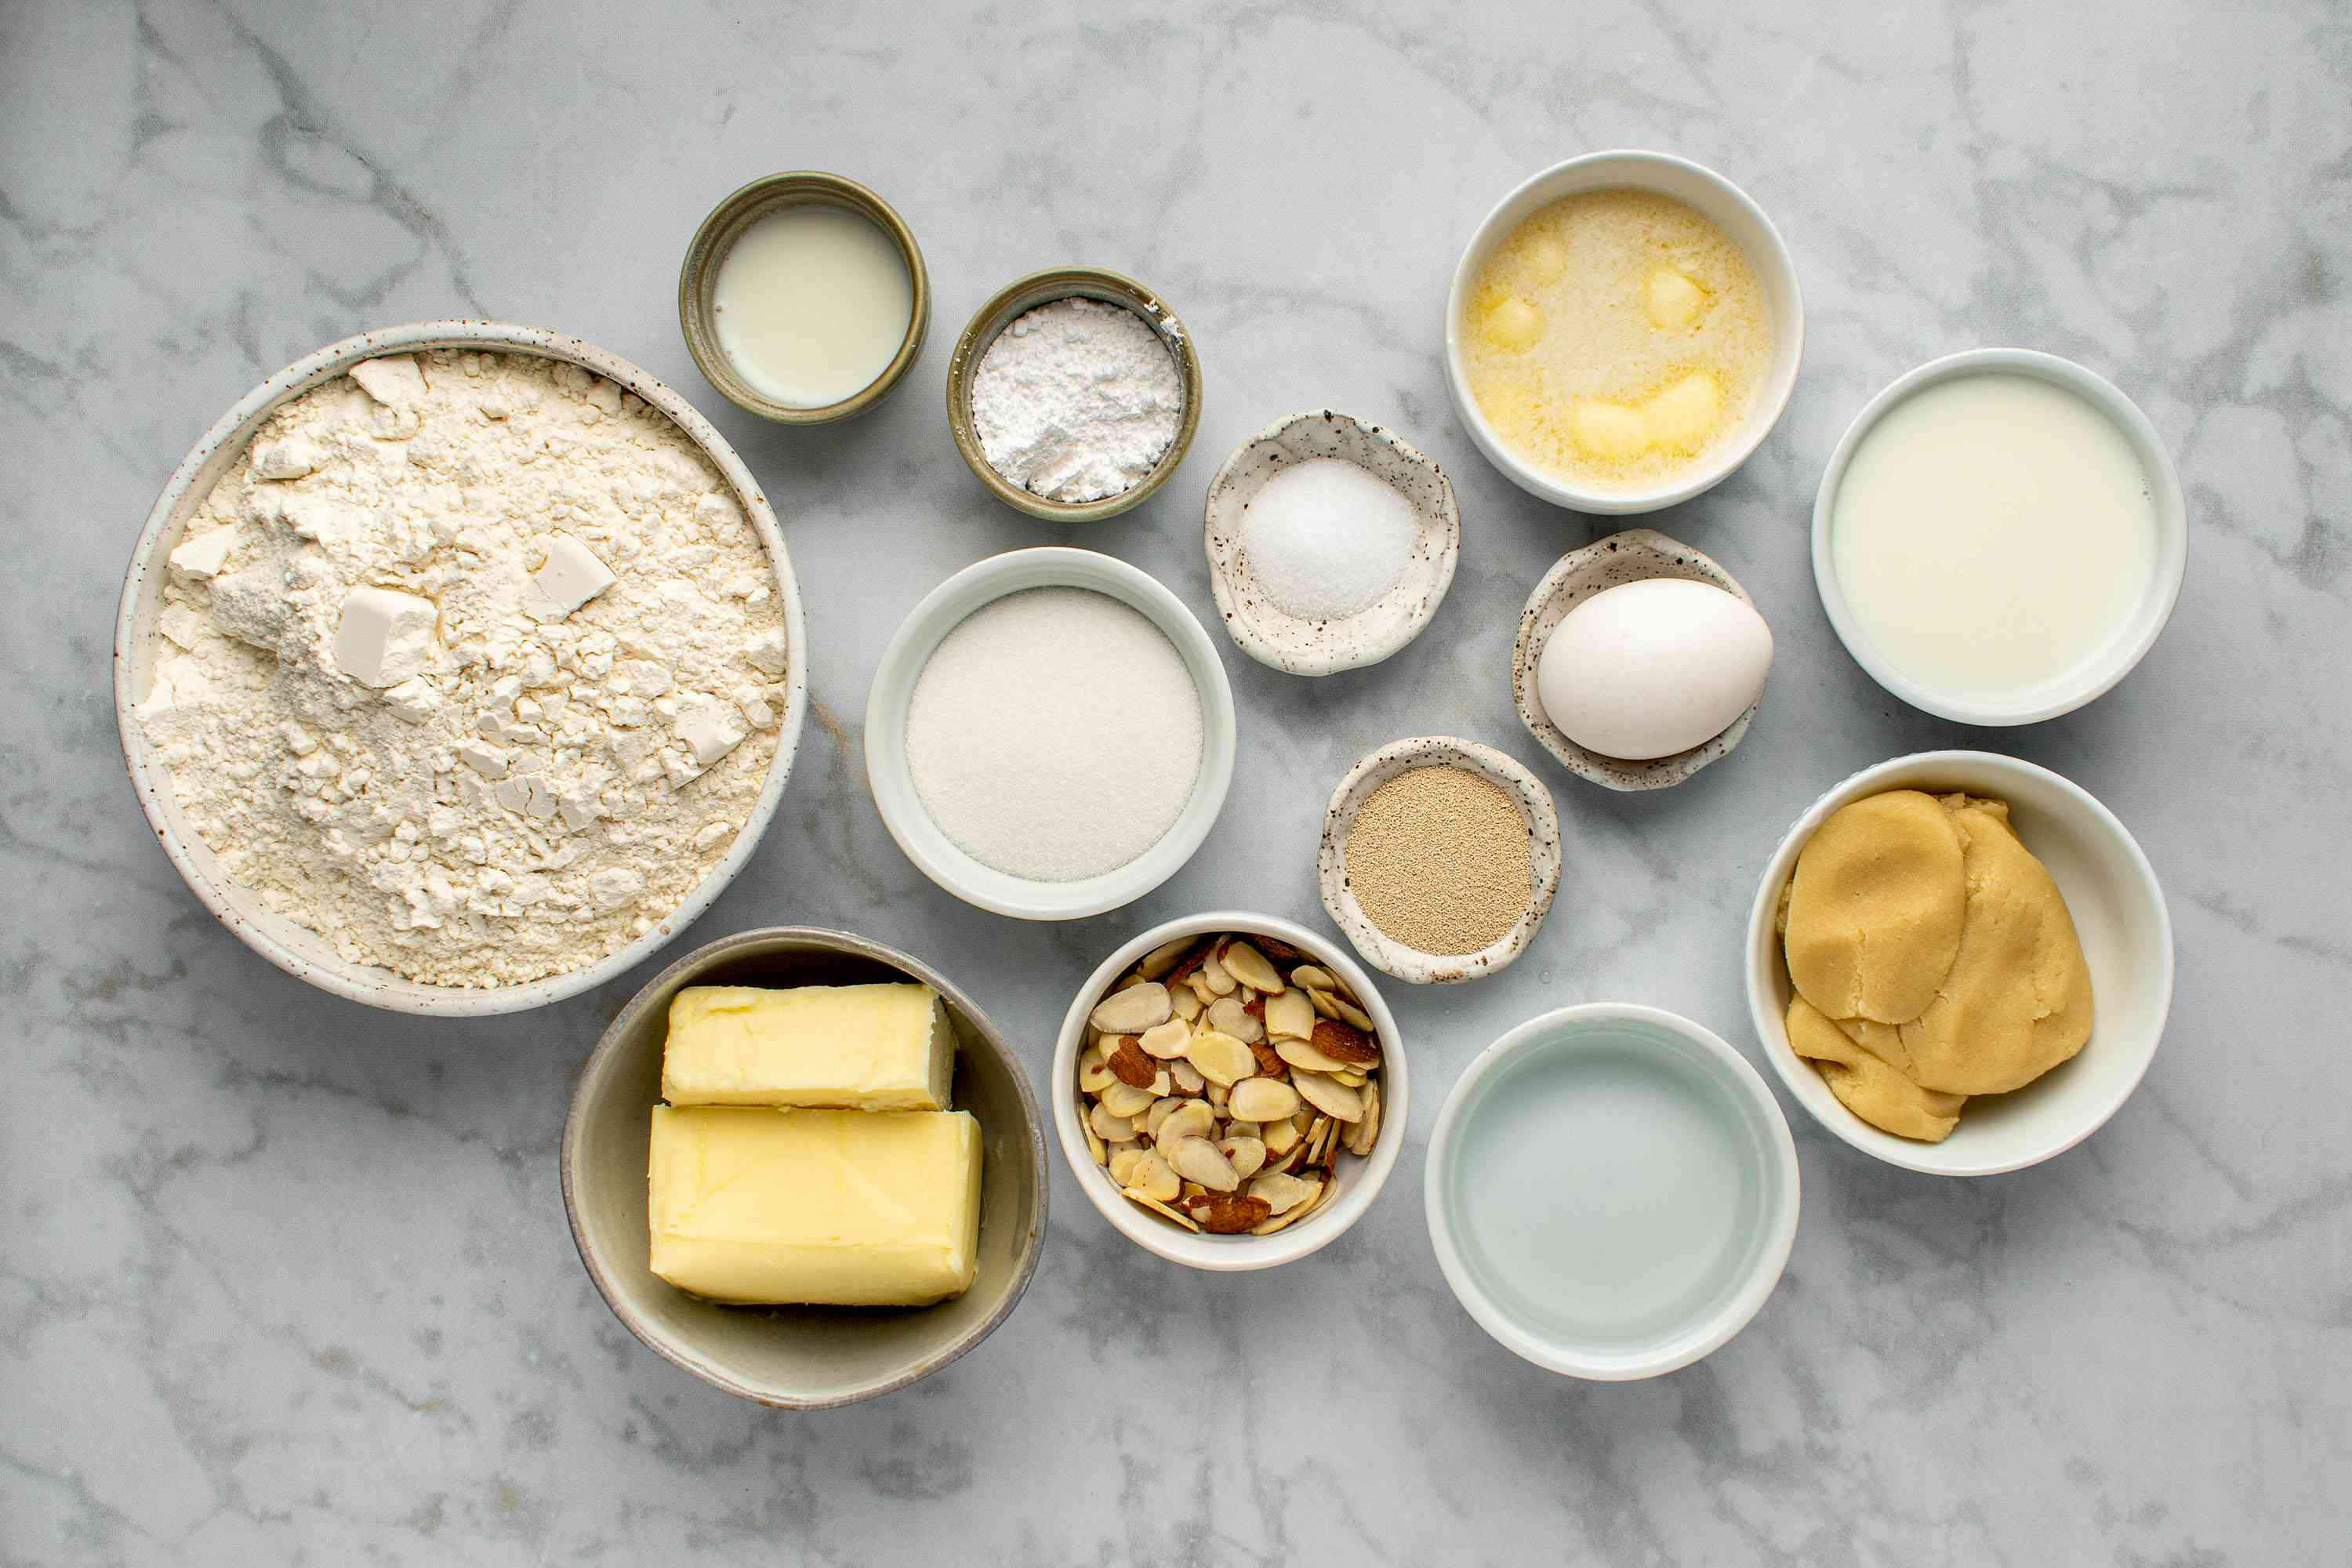 Classic French Almond Croissants ingredients